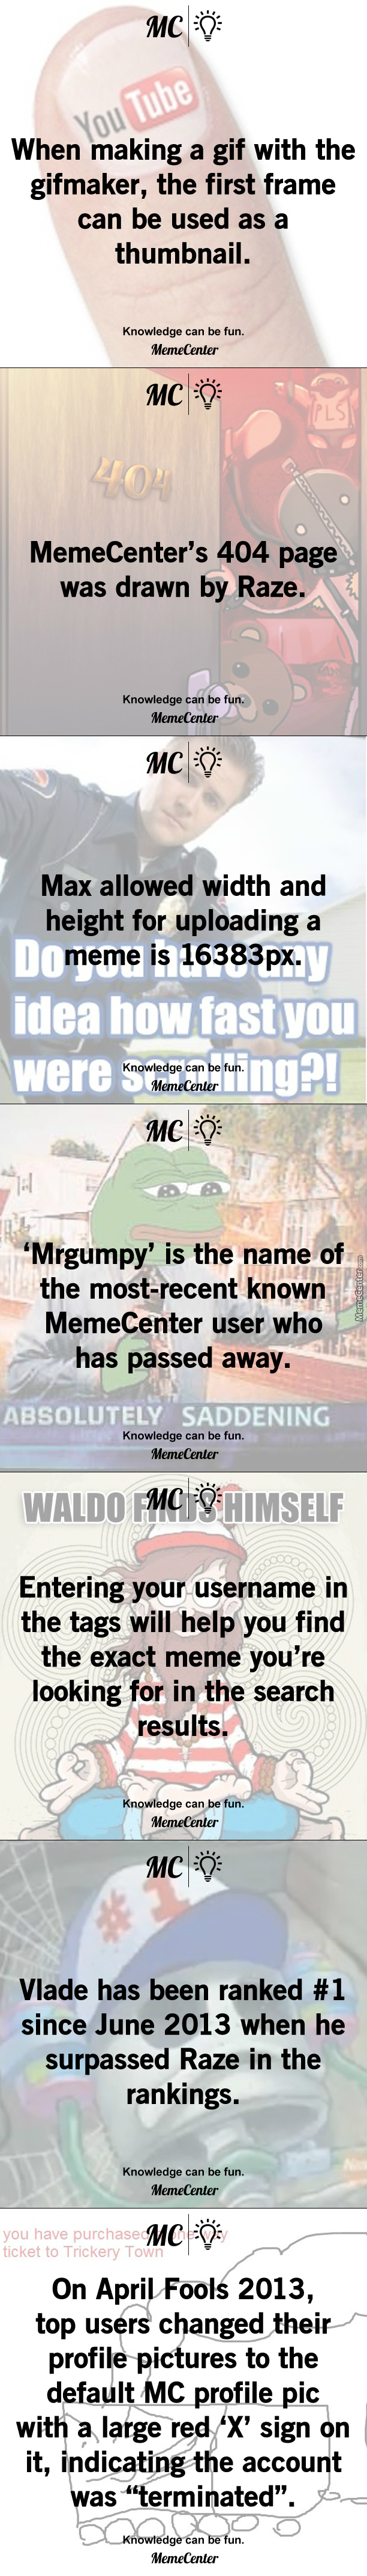 Mc Facts #10